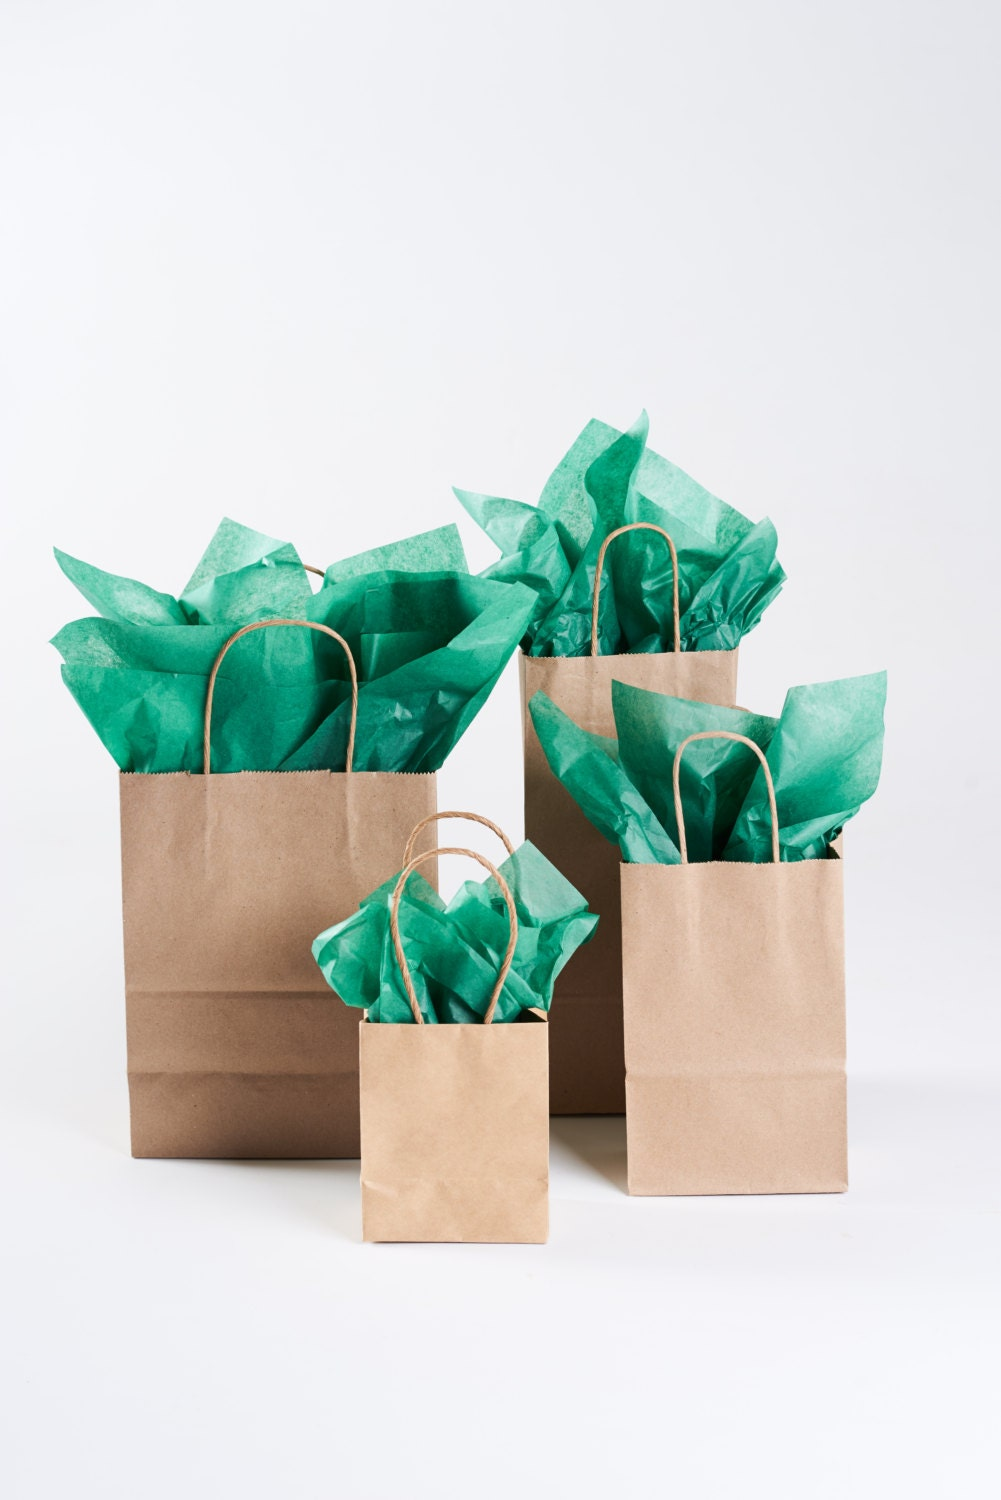 50 small kraft paper gift bags with handles mini gift bags in 4599 jeuxipadfo Choice Image